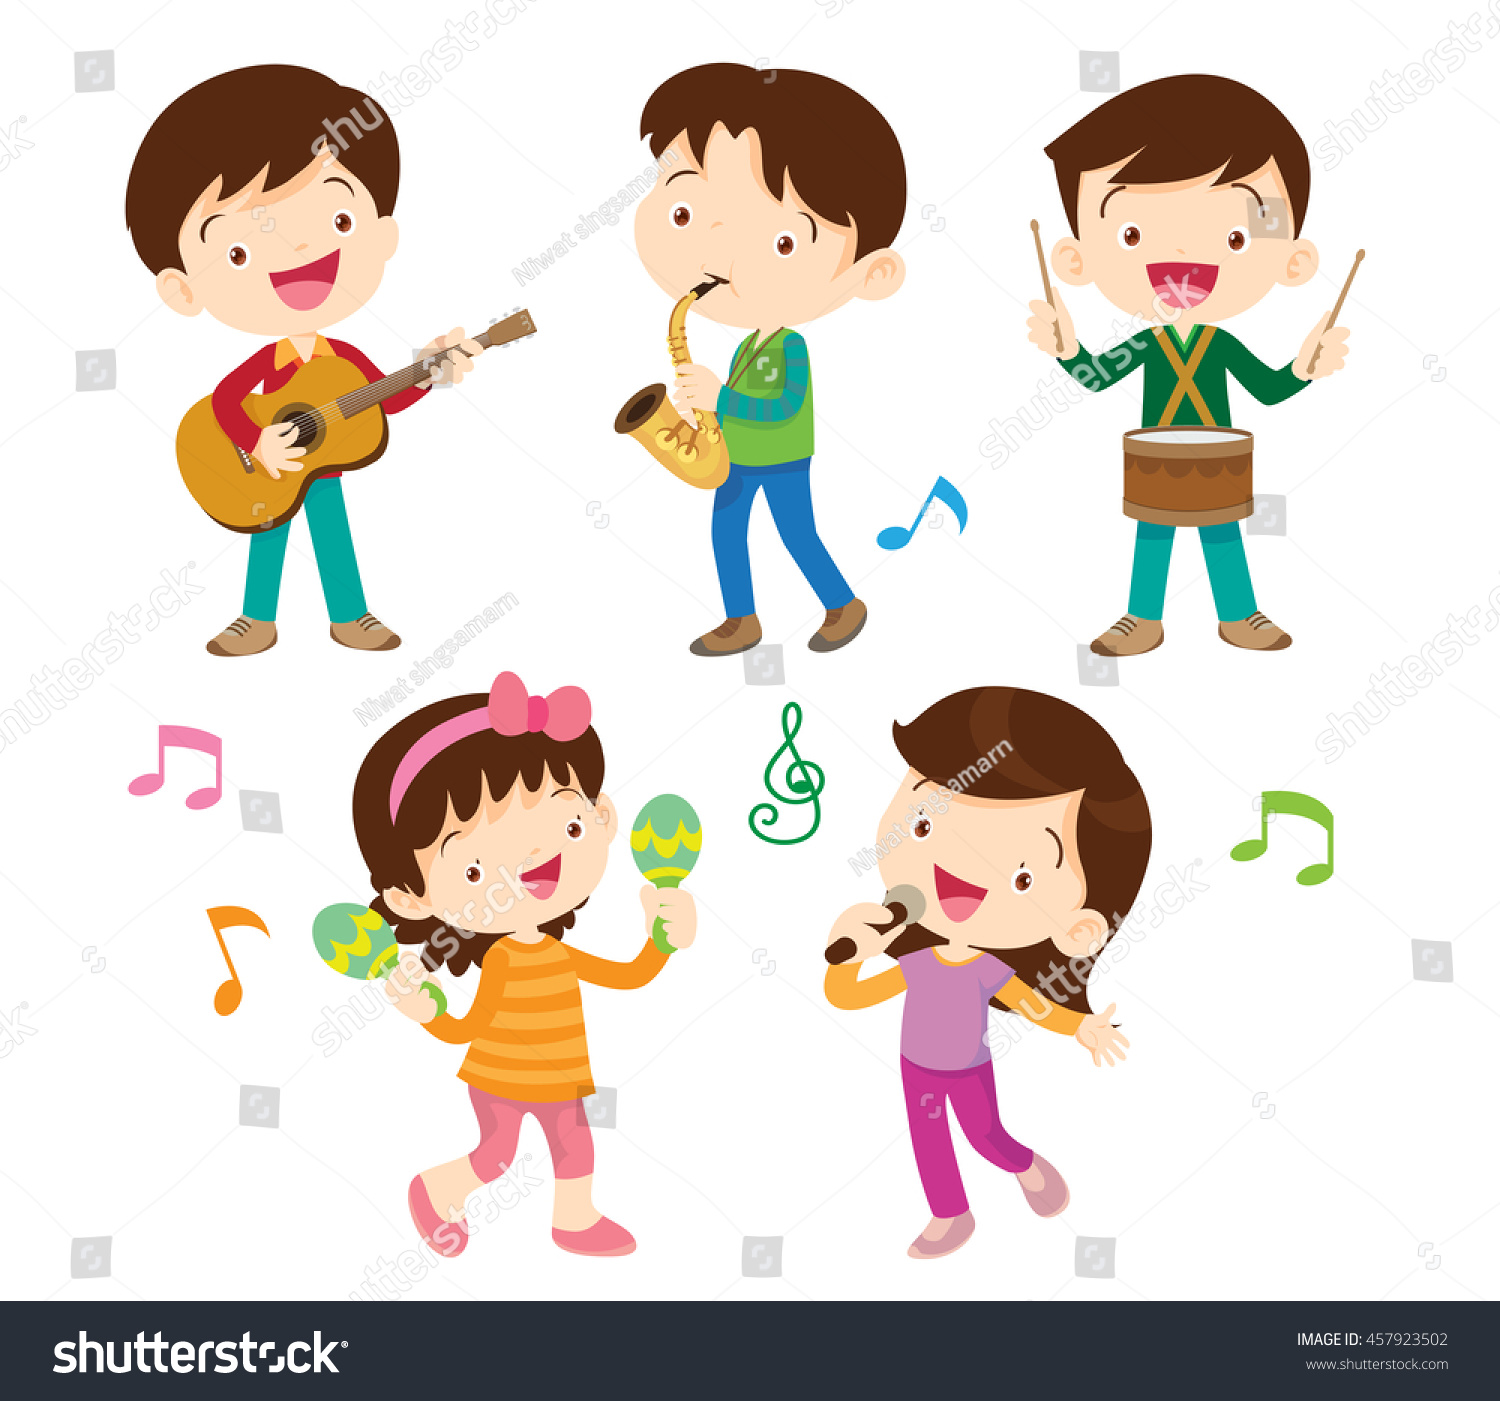 Illustrator Vector Children Groupcartoon Dancing Kids Stock Vector